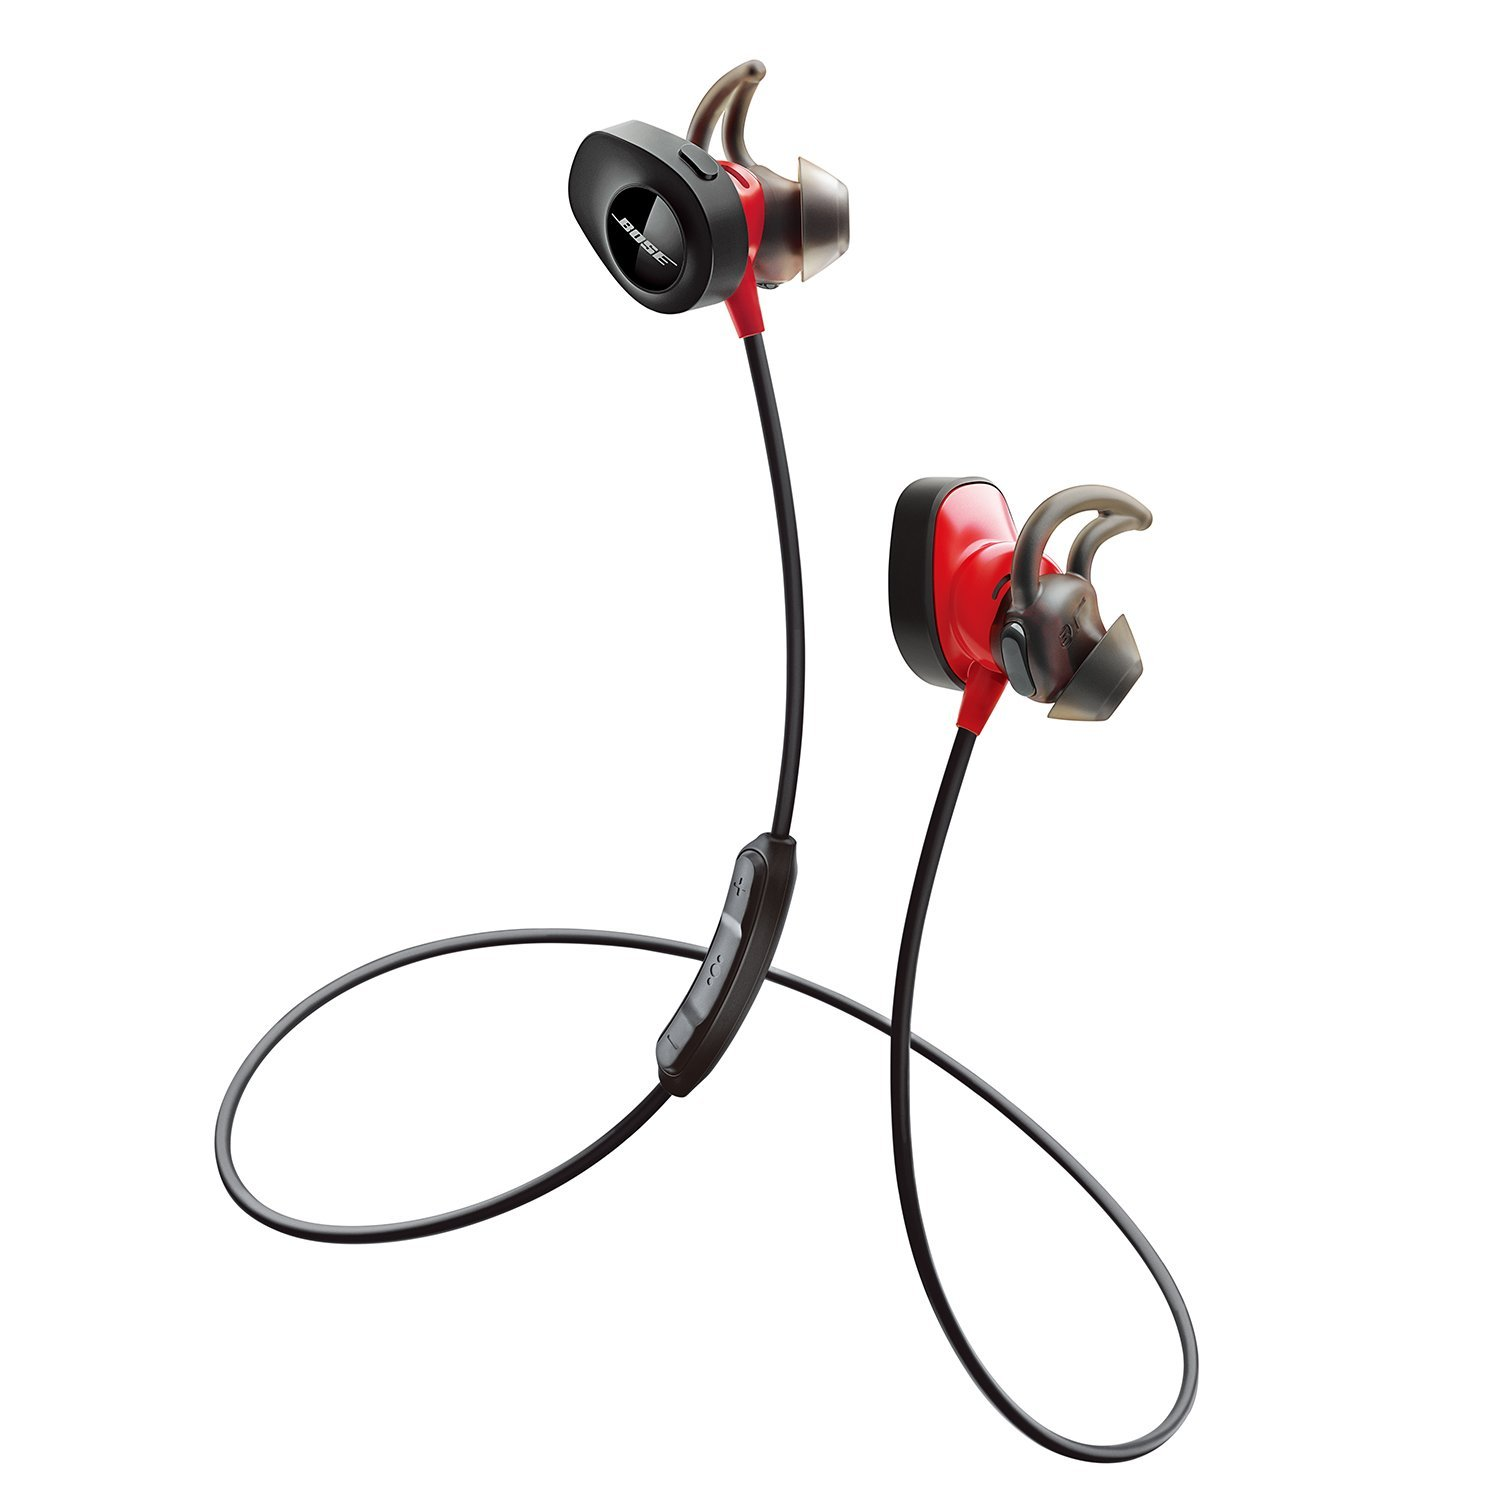 a0bb5f5b14b Amazon.com: Bose SoundSport Pulse Wireless Headphones, Power Red (With  Heartrate Monitor) (Certified Refurbished): Home Audio & Theater